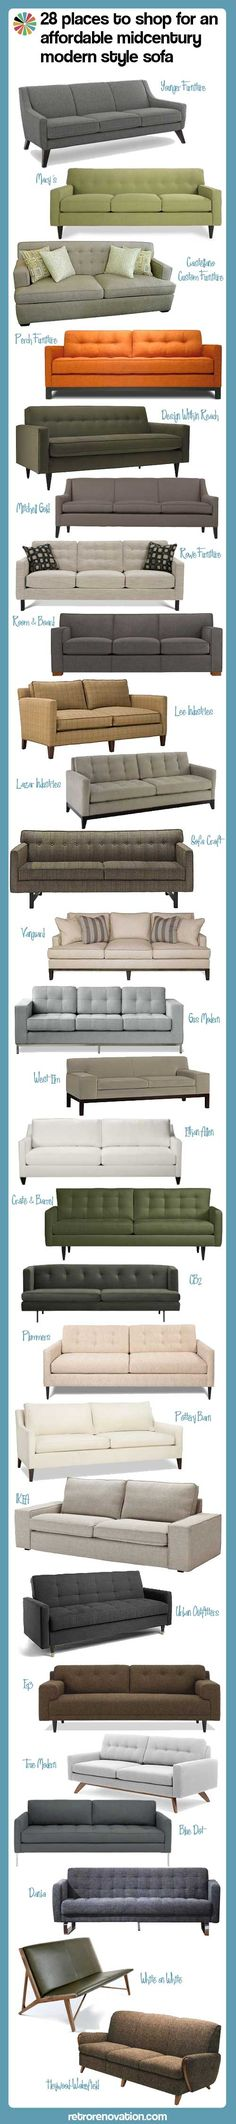 28 affordable mid century modern sofas — Retro Renovation